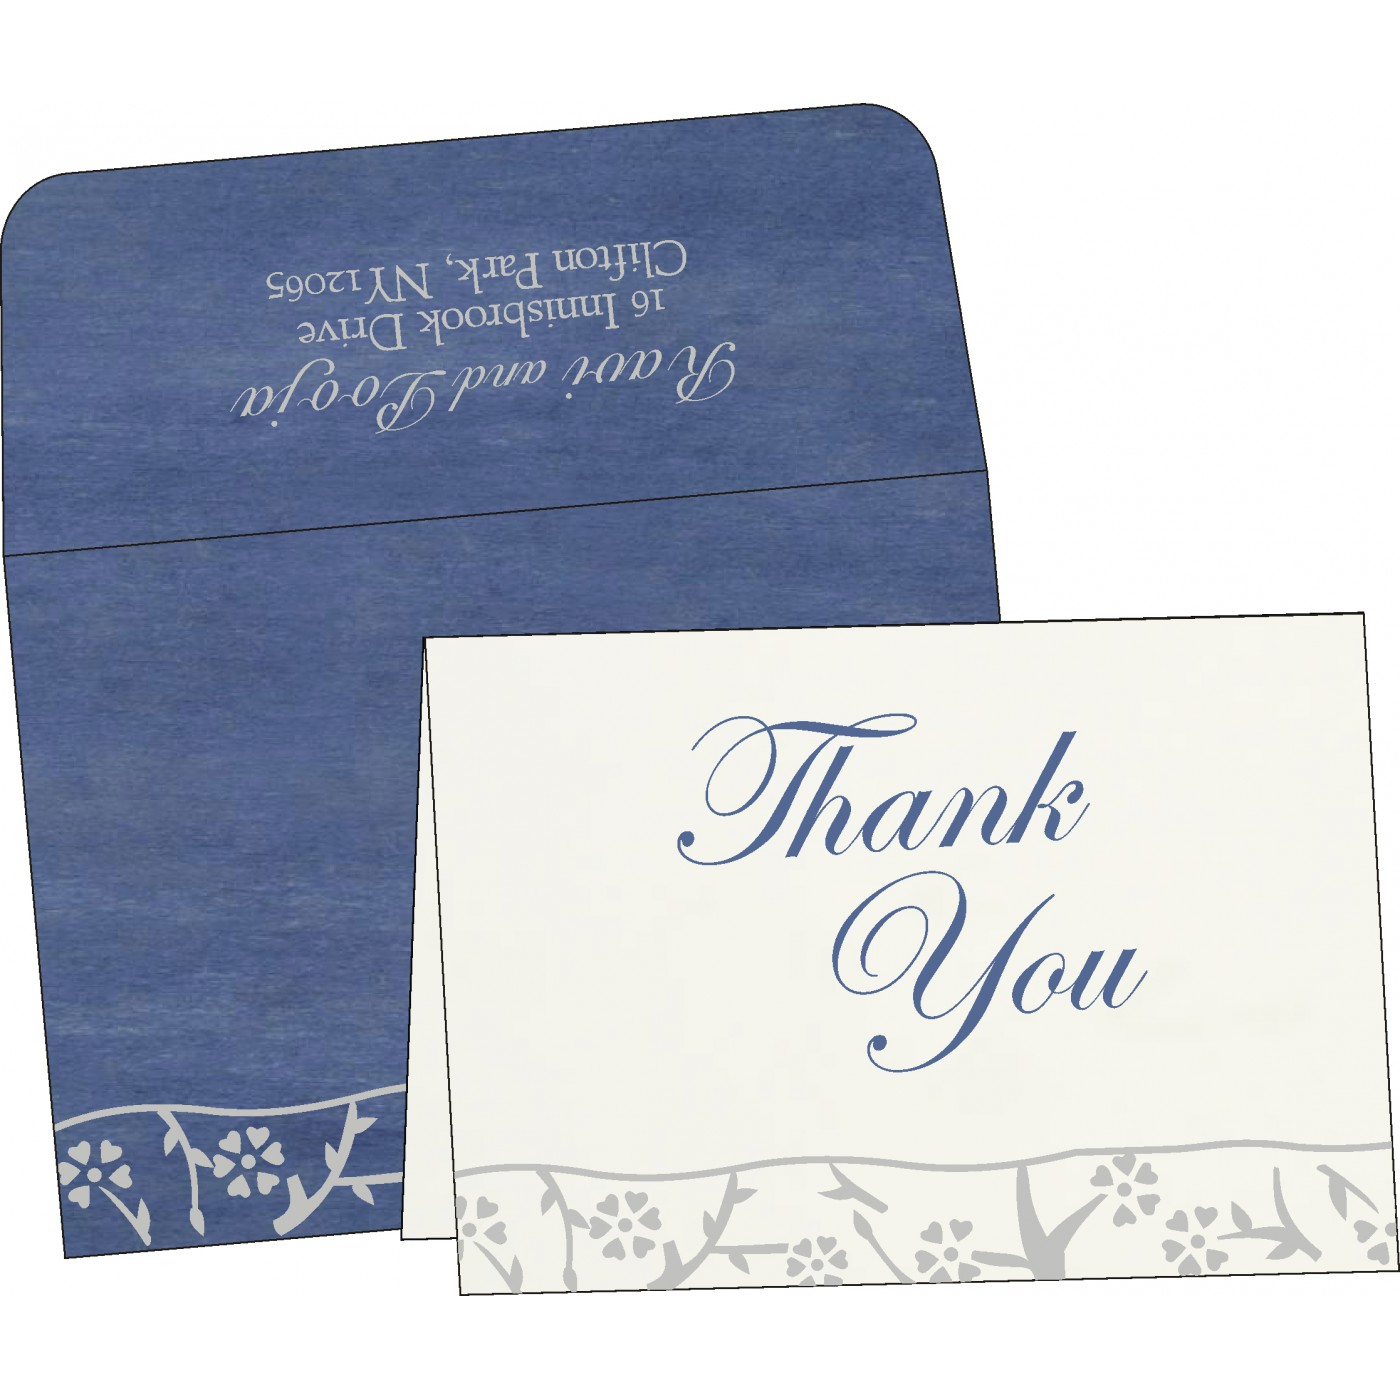 Thank You Cards - TYC-8216D